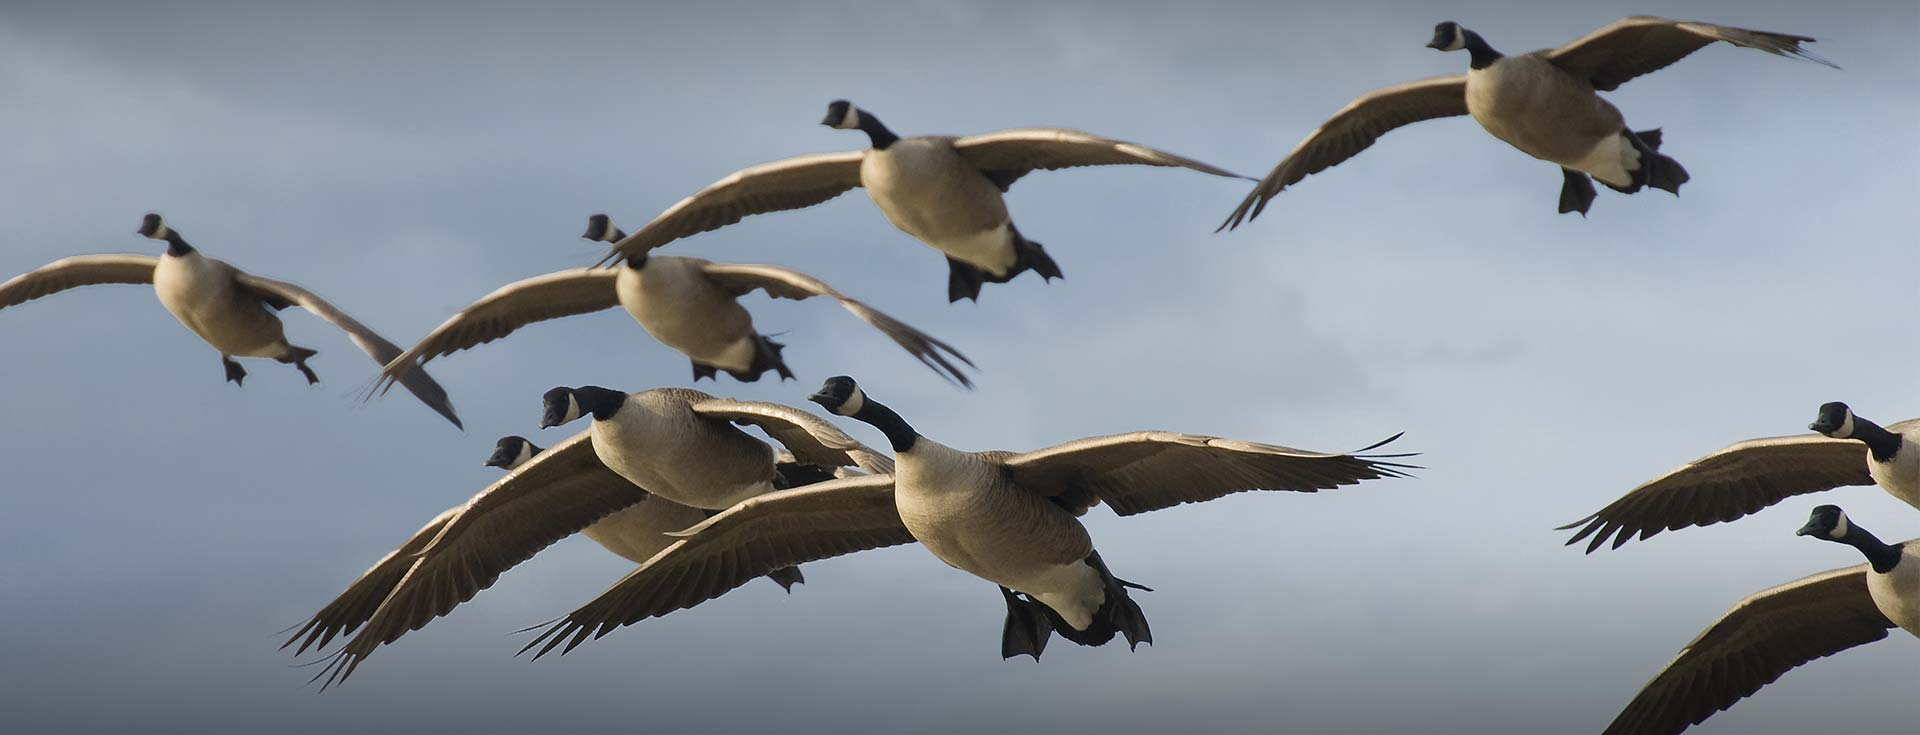 Field Tips for Canada Goose Hunting